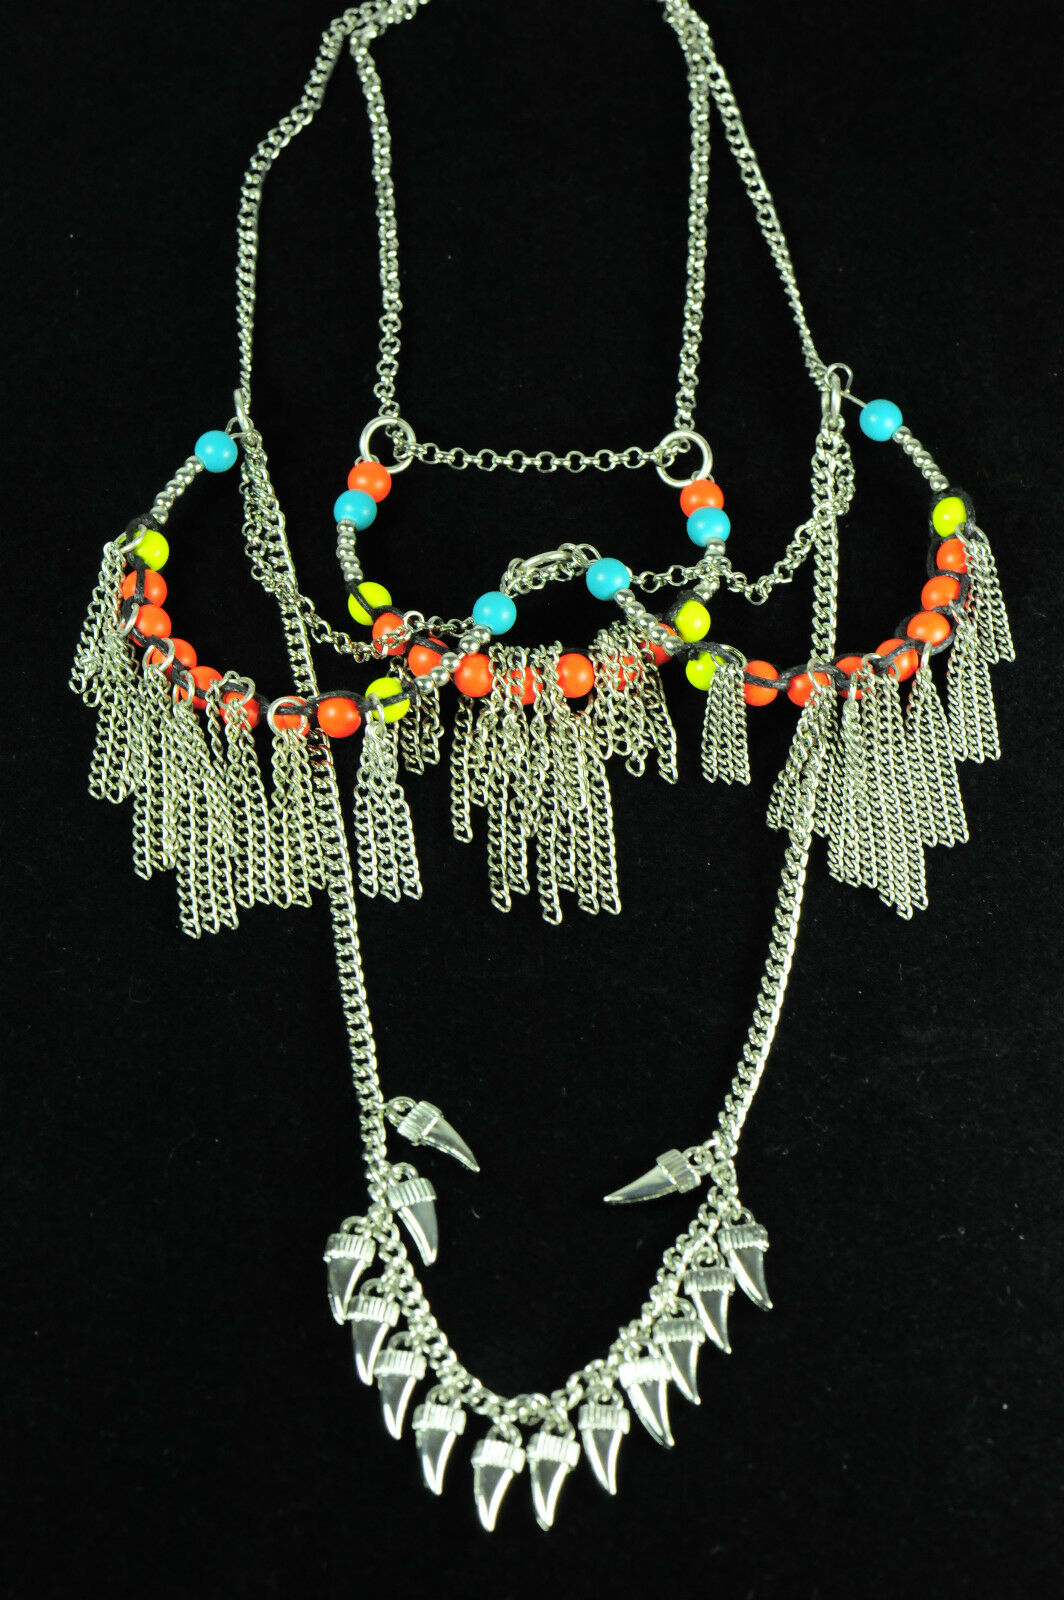 Ladies Aztec Colorful Necklace Unique Layered Multi Drop Brand New Cl10 Ebay